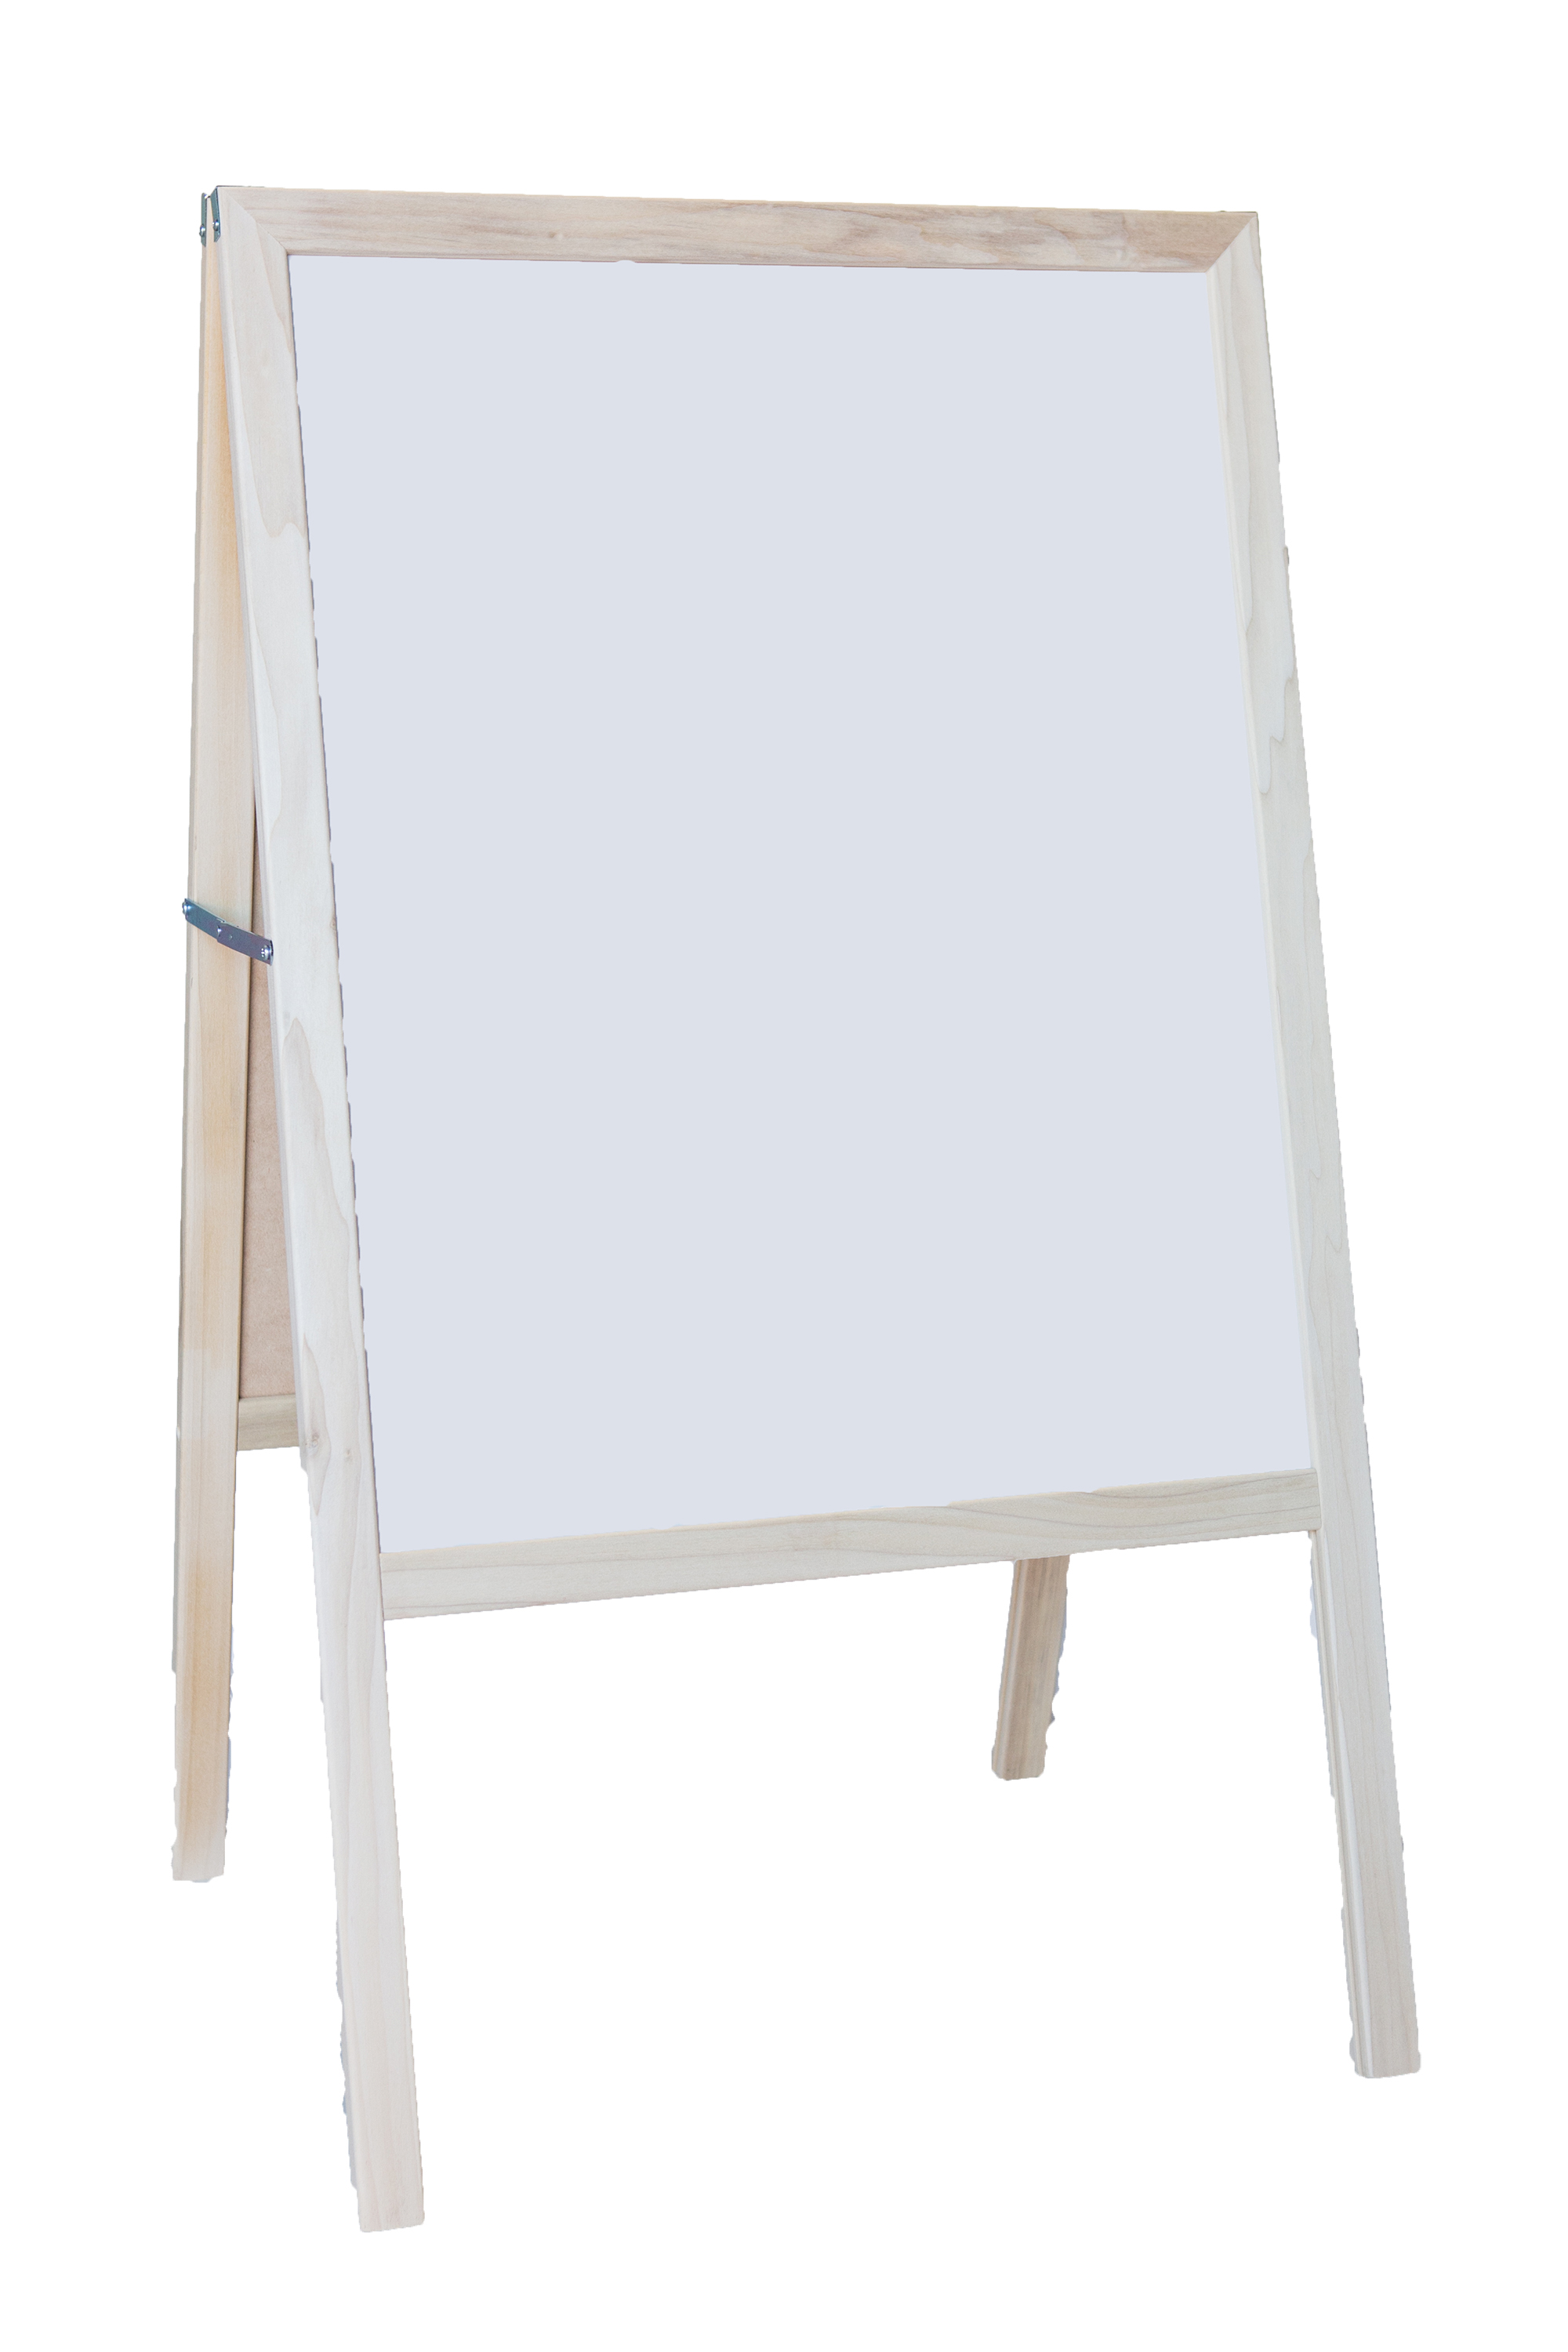 "42"" X 24"" Natural Marquee Easel White Dry Erase   Black Chalkboard by Flipside Products"